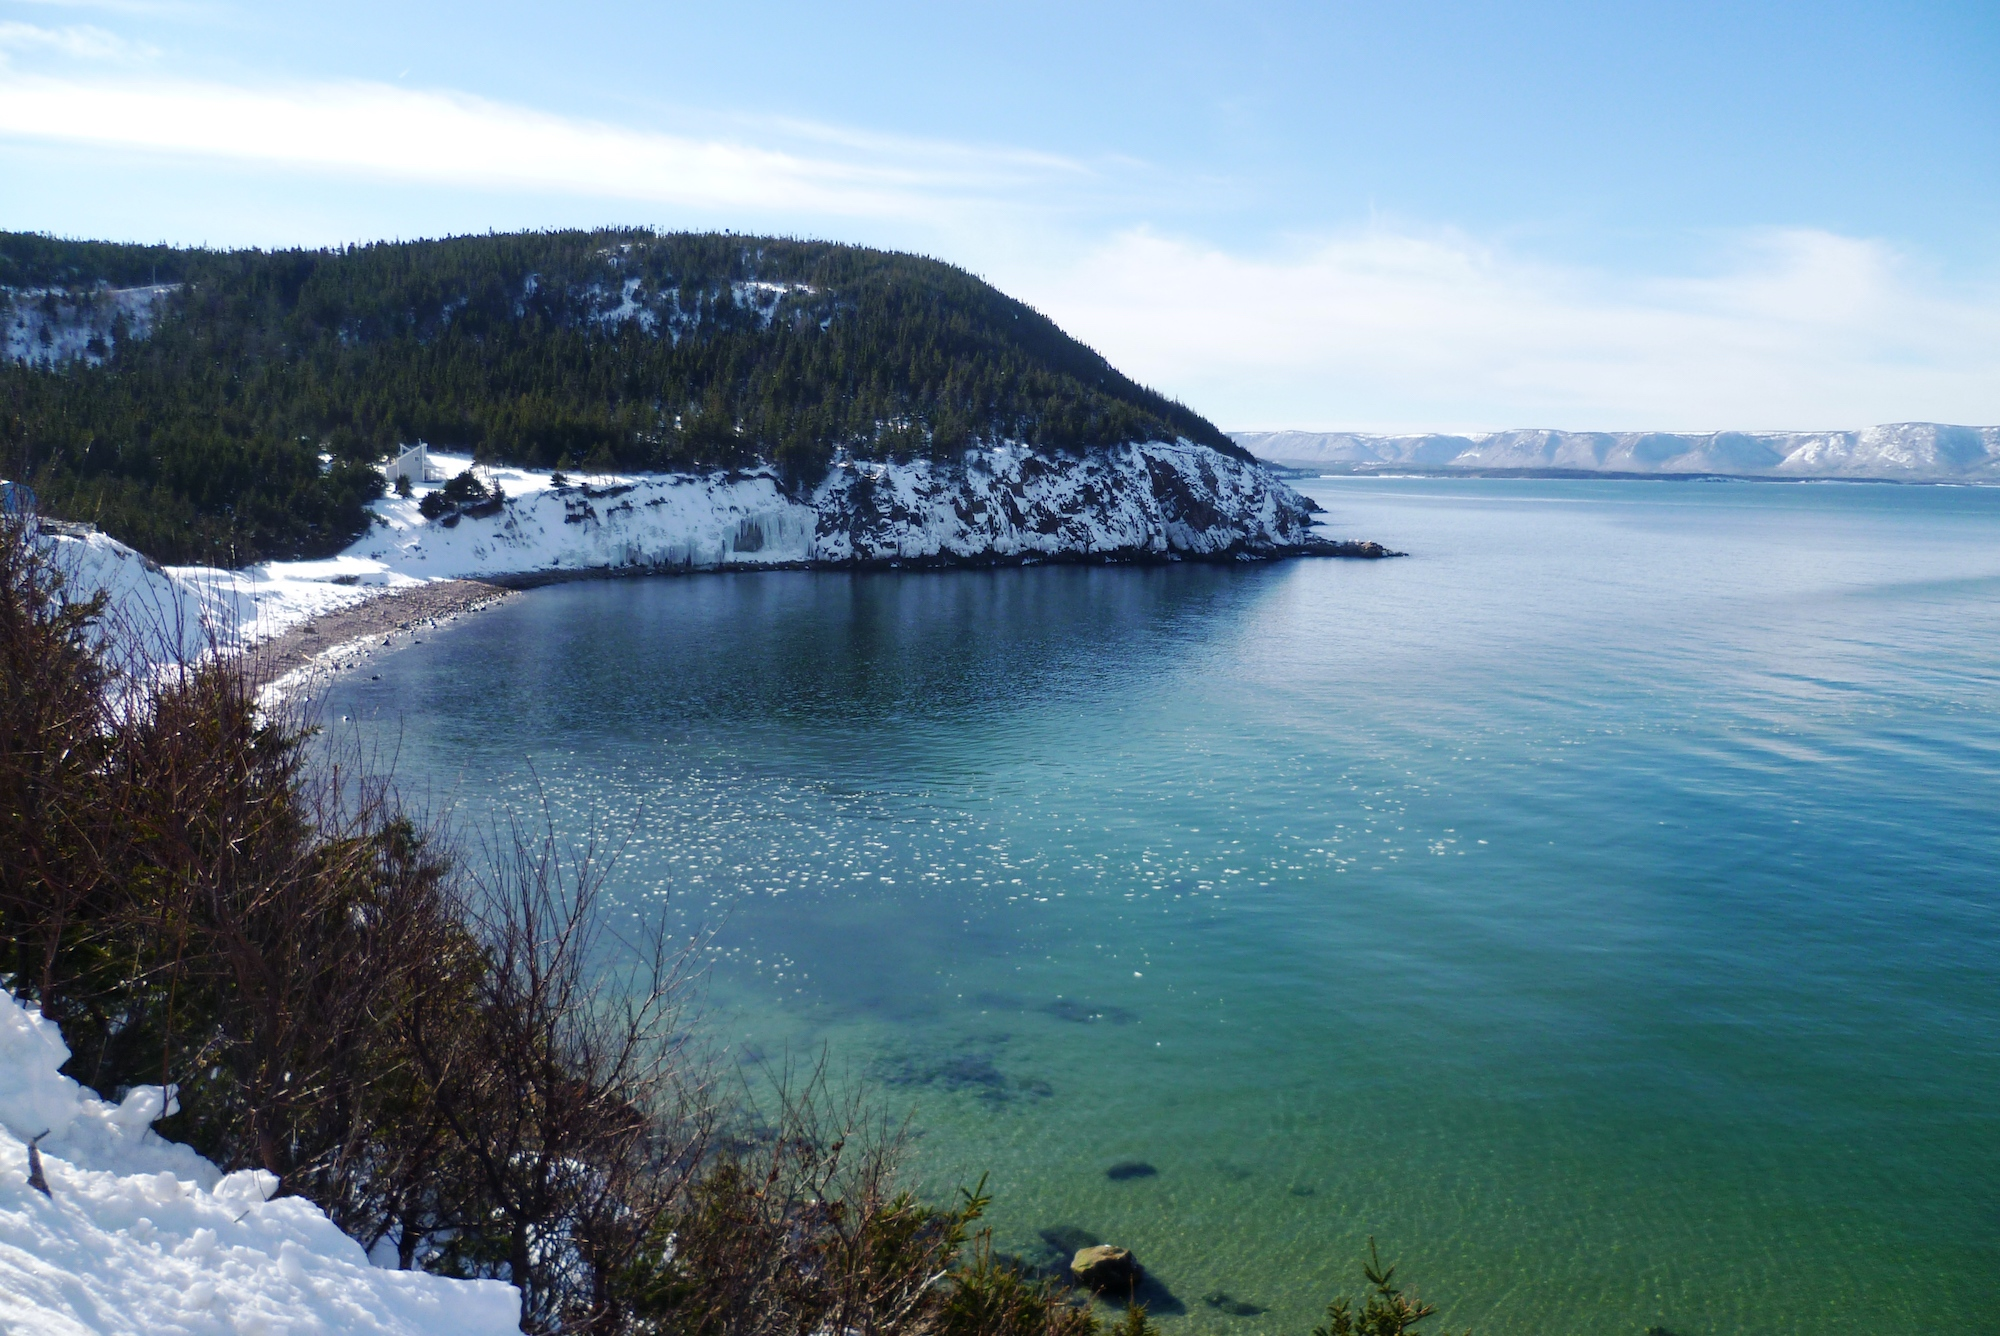 Hiver au Canada - White Point, Alternative Scenic Road